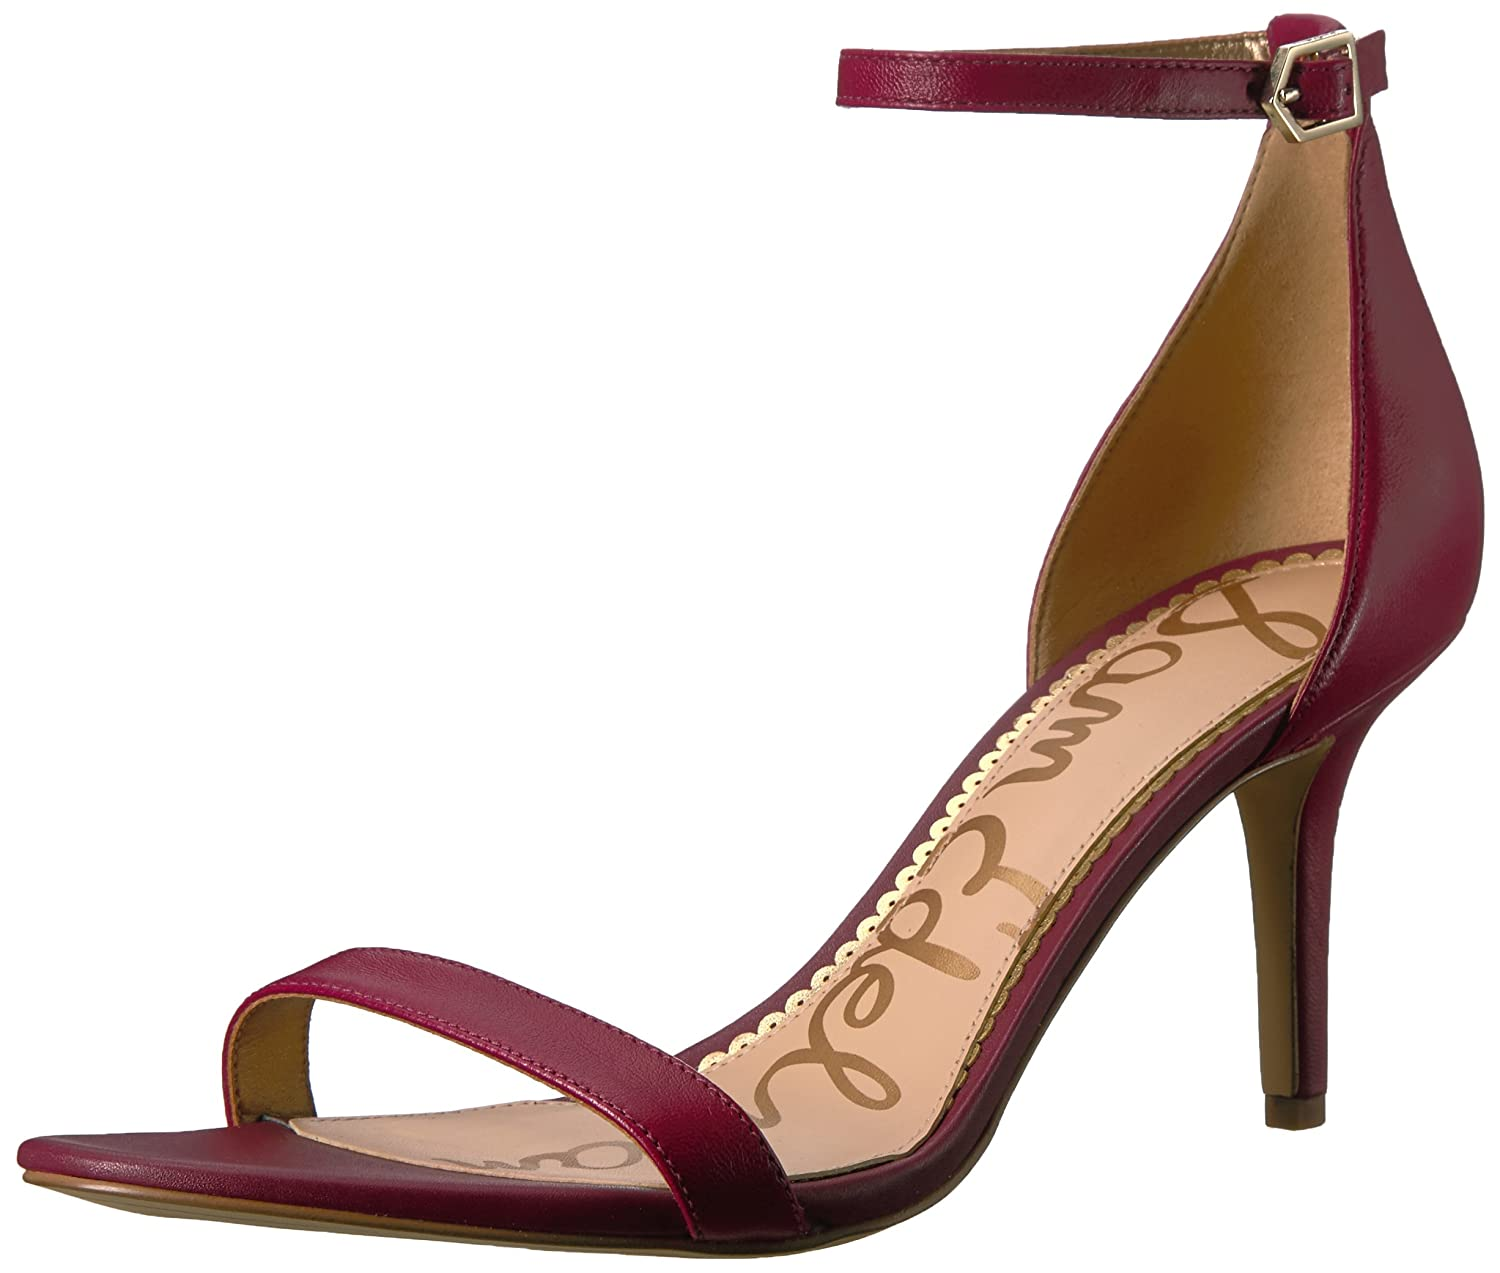 Cranberry Leather Sam Edelman Women's Patti Fashion Sandals